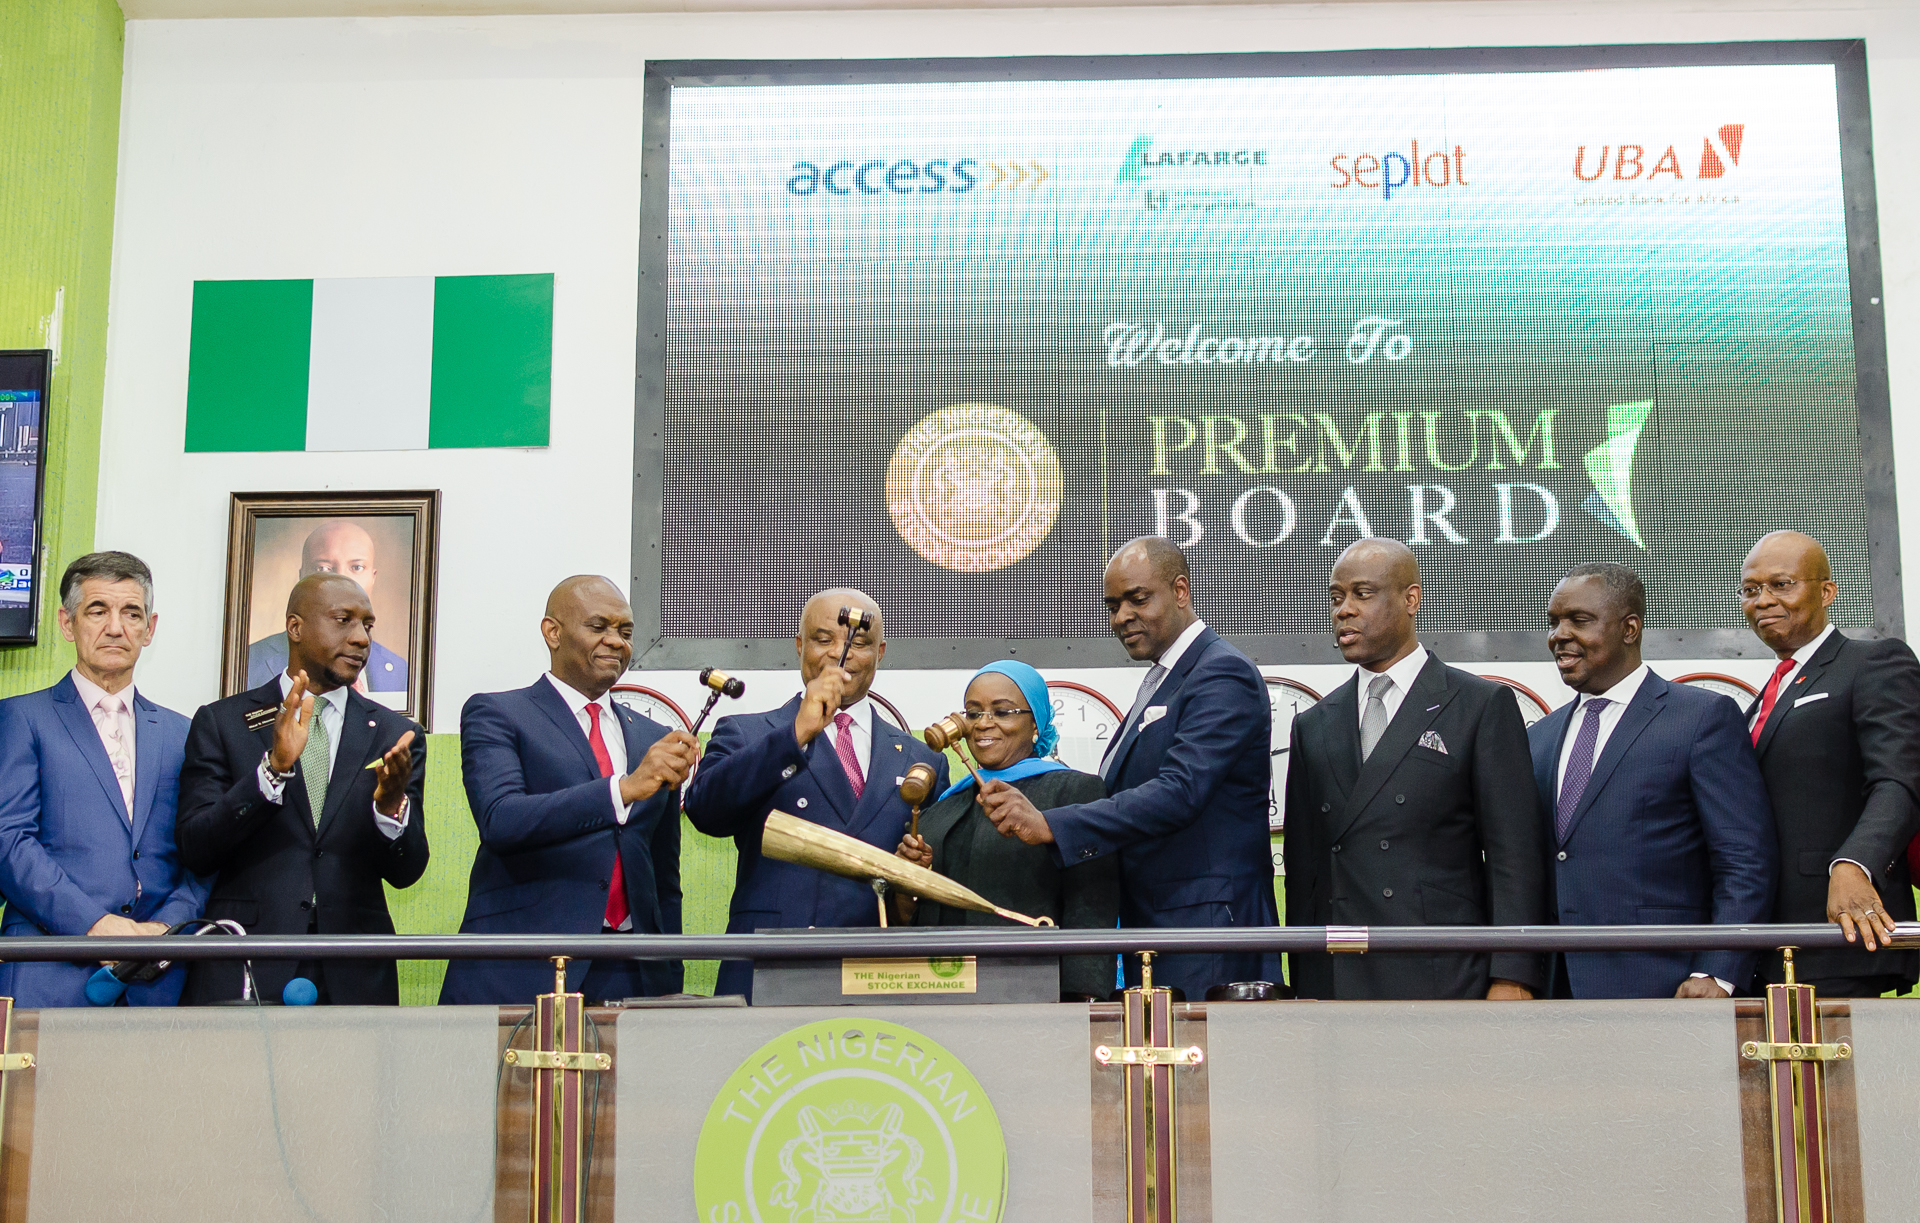 http://www.thecapital.ng/wp-content/uploads/2018/04/NSE-Premium-1.jpg